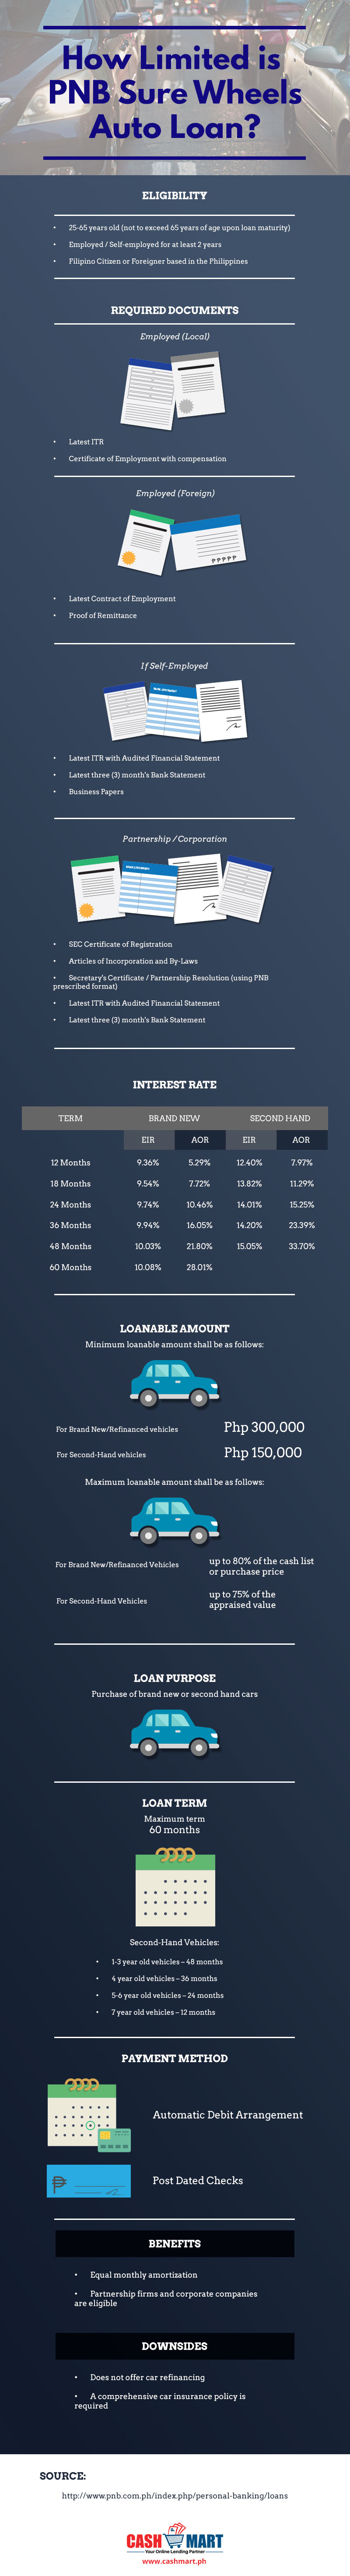 how-limited-is-pnb-sure-wheels-auto-loan